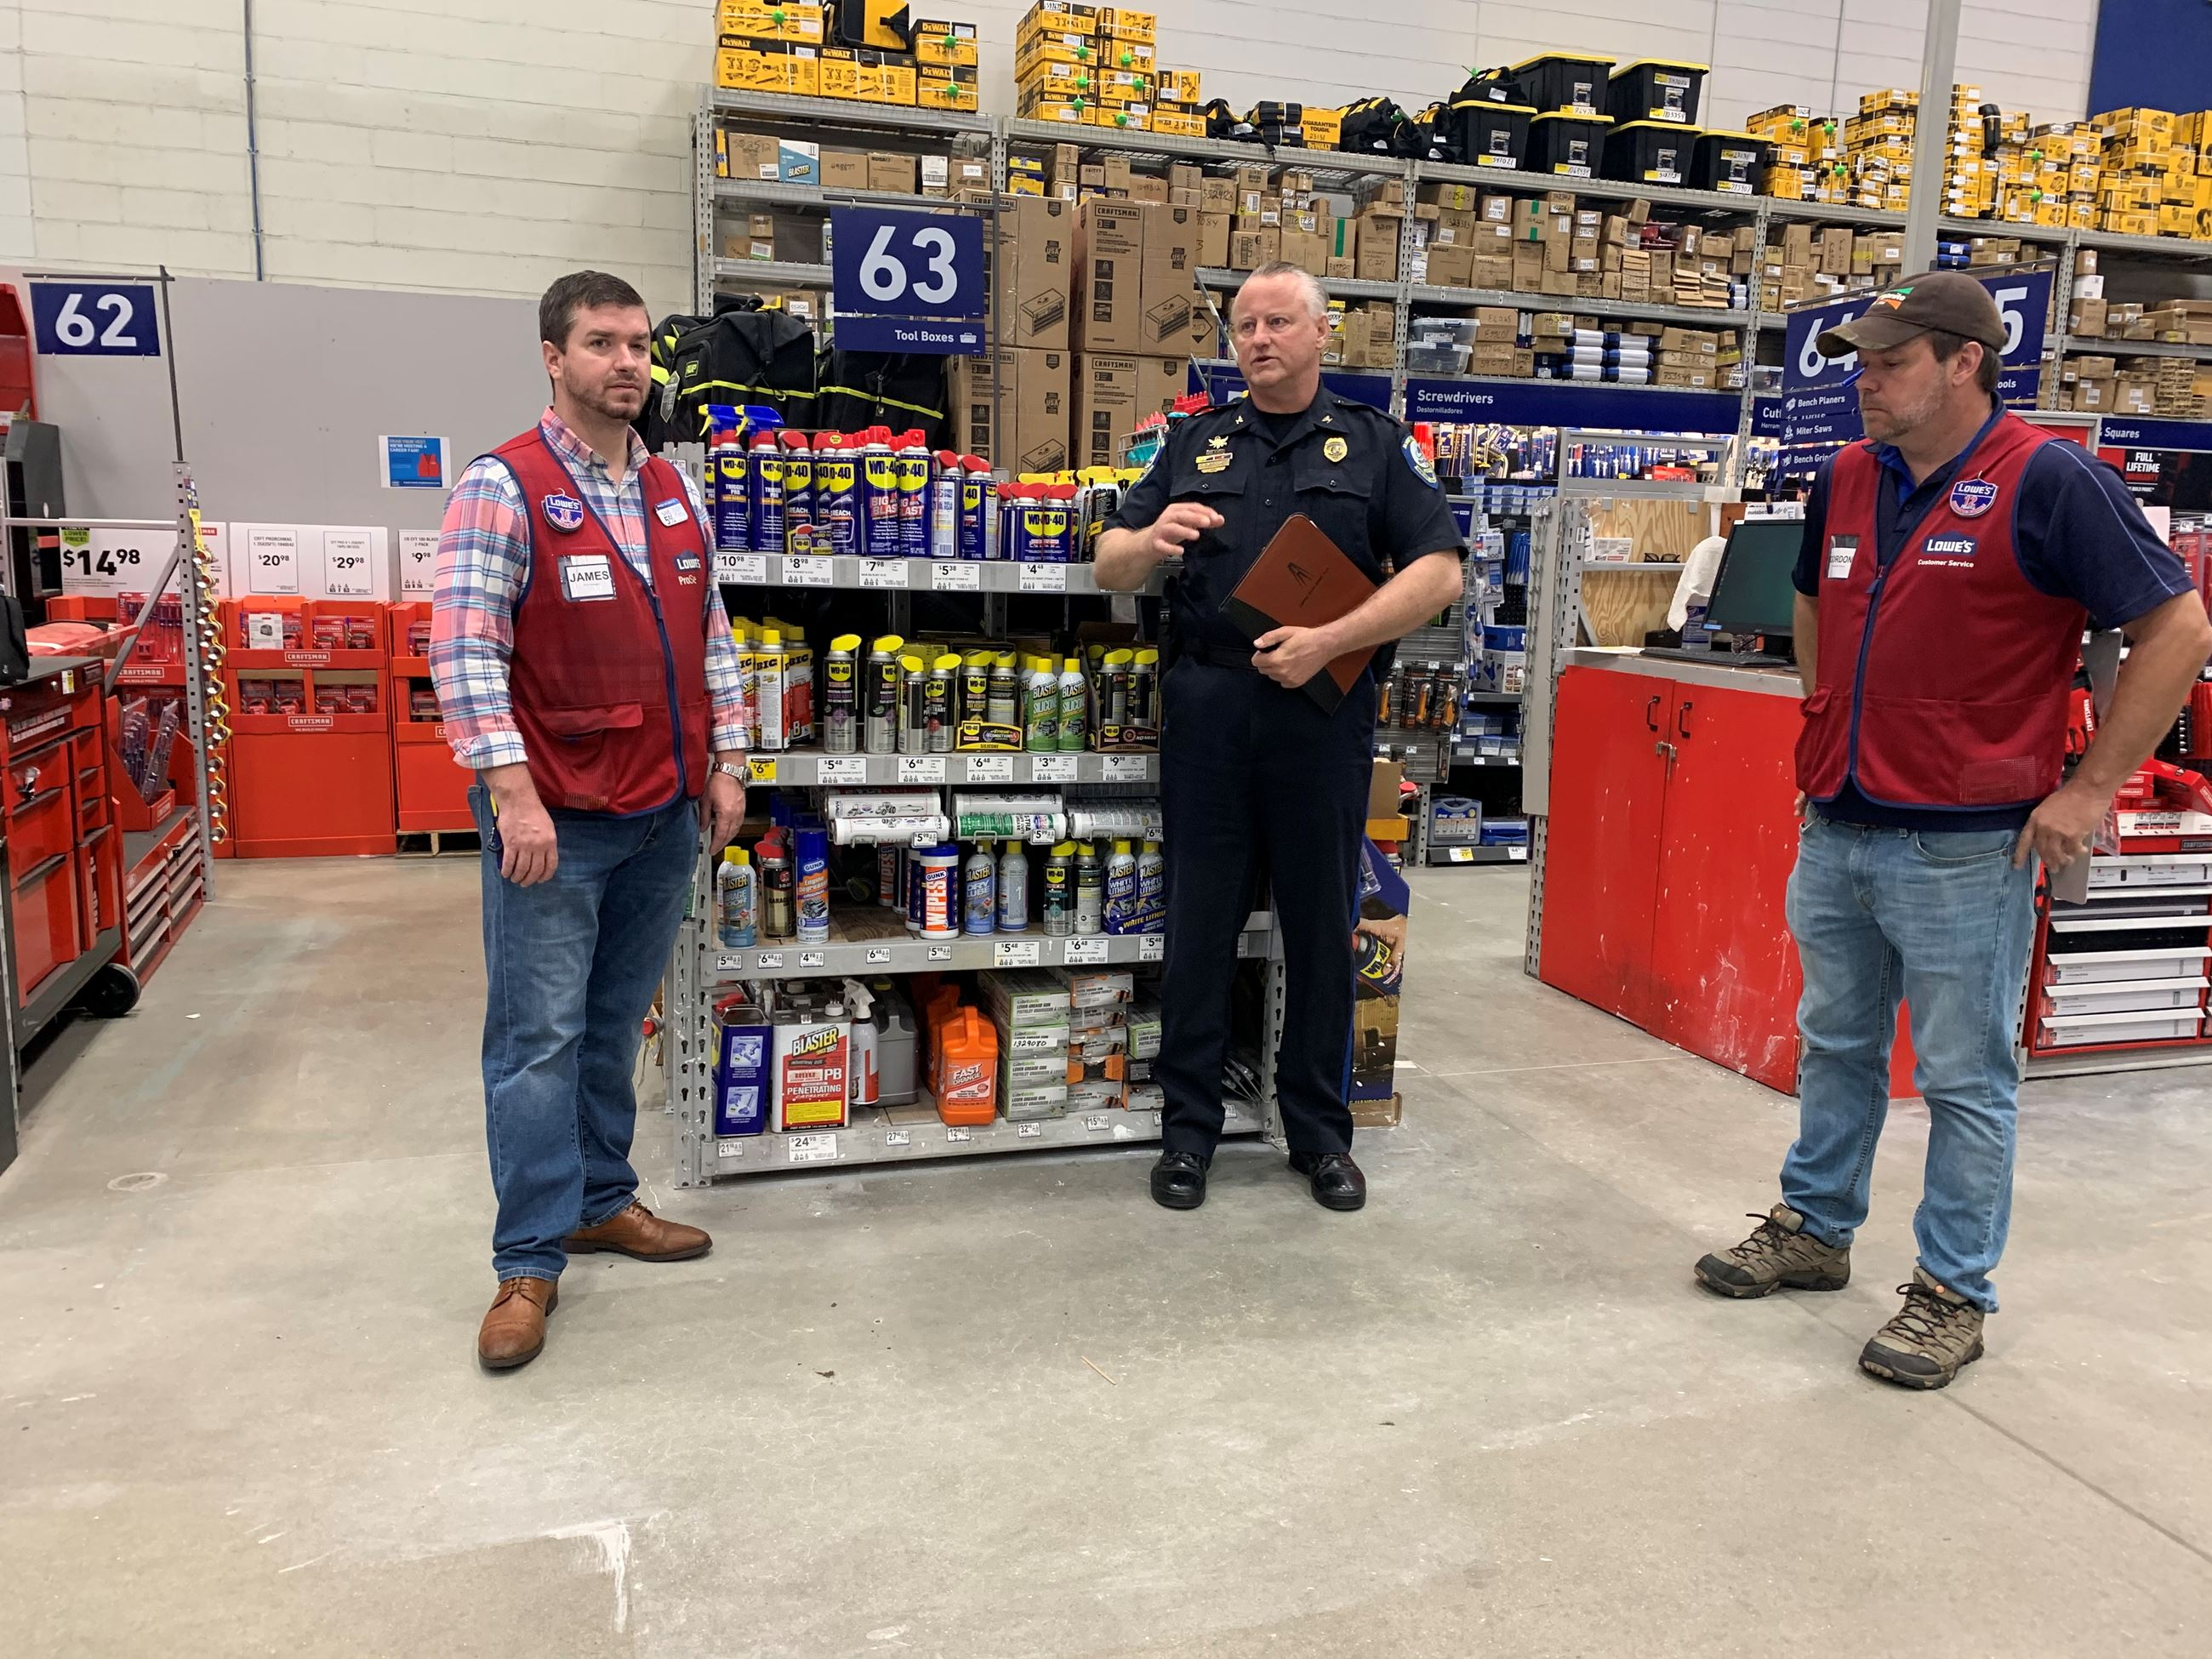 Chief at Lowes